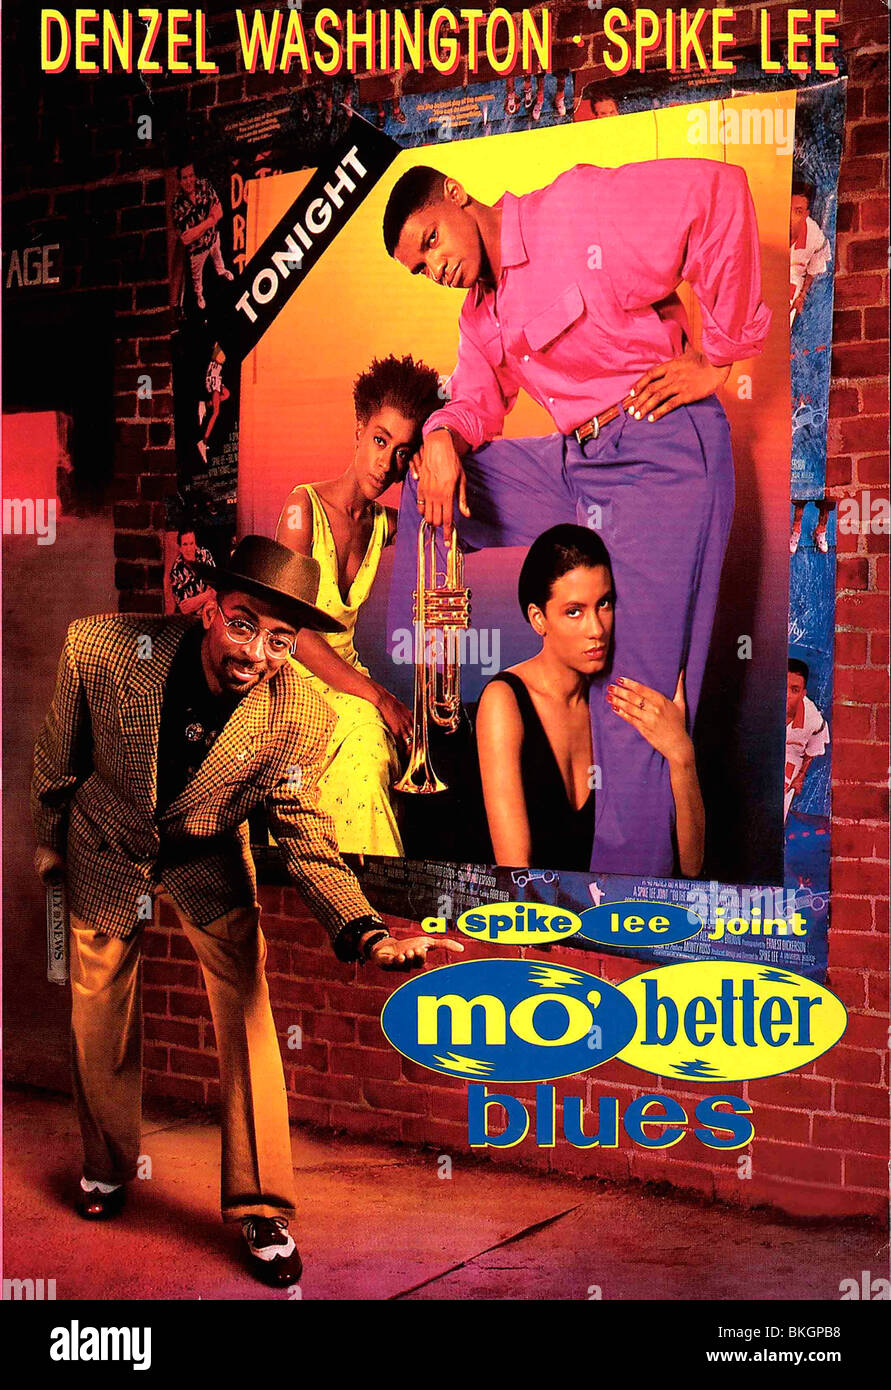 MO' BETTER BLUES -1990 POSTER - Stock Image